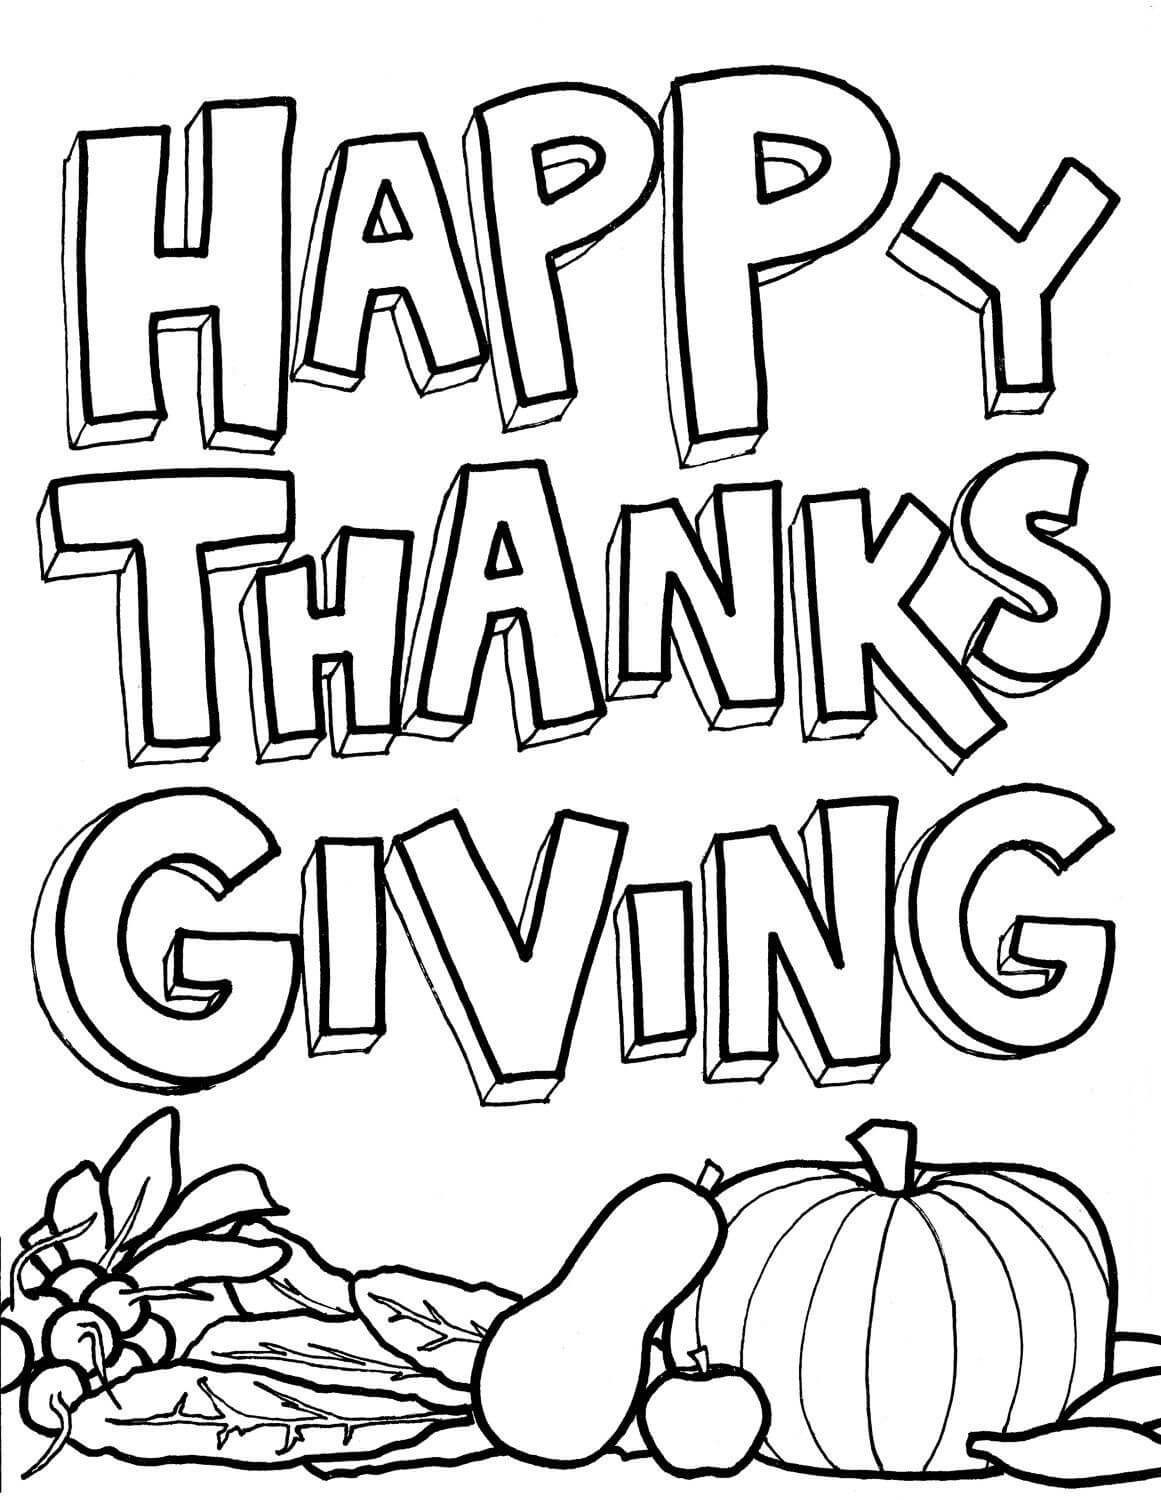 15 Printable Thanksgiving Coloring Pages - Holiday Vault